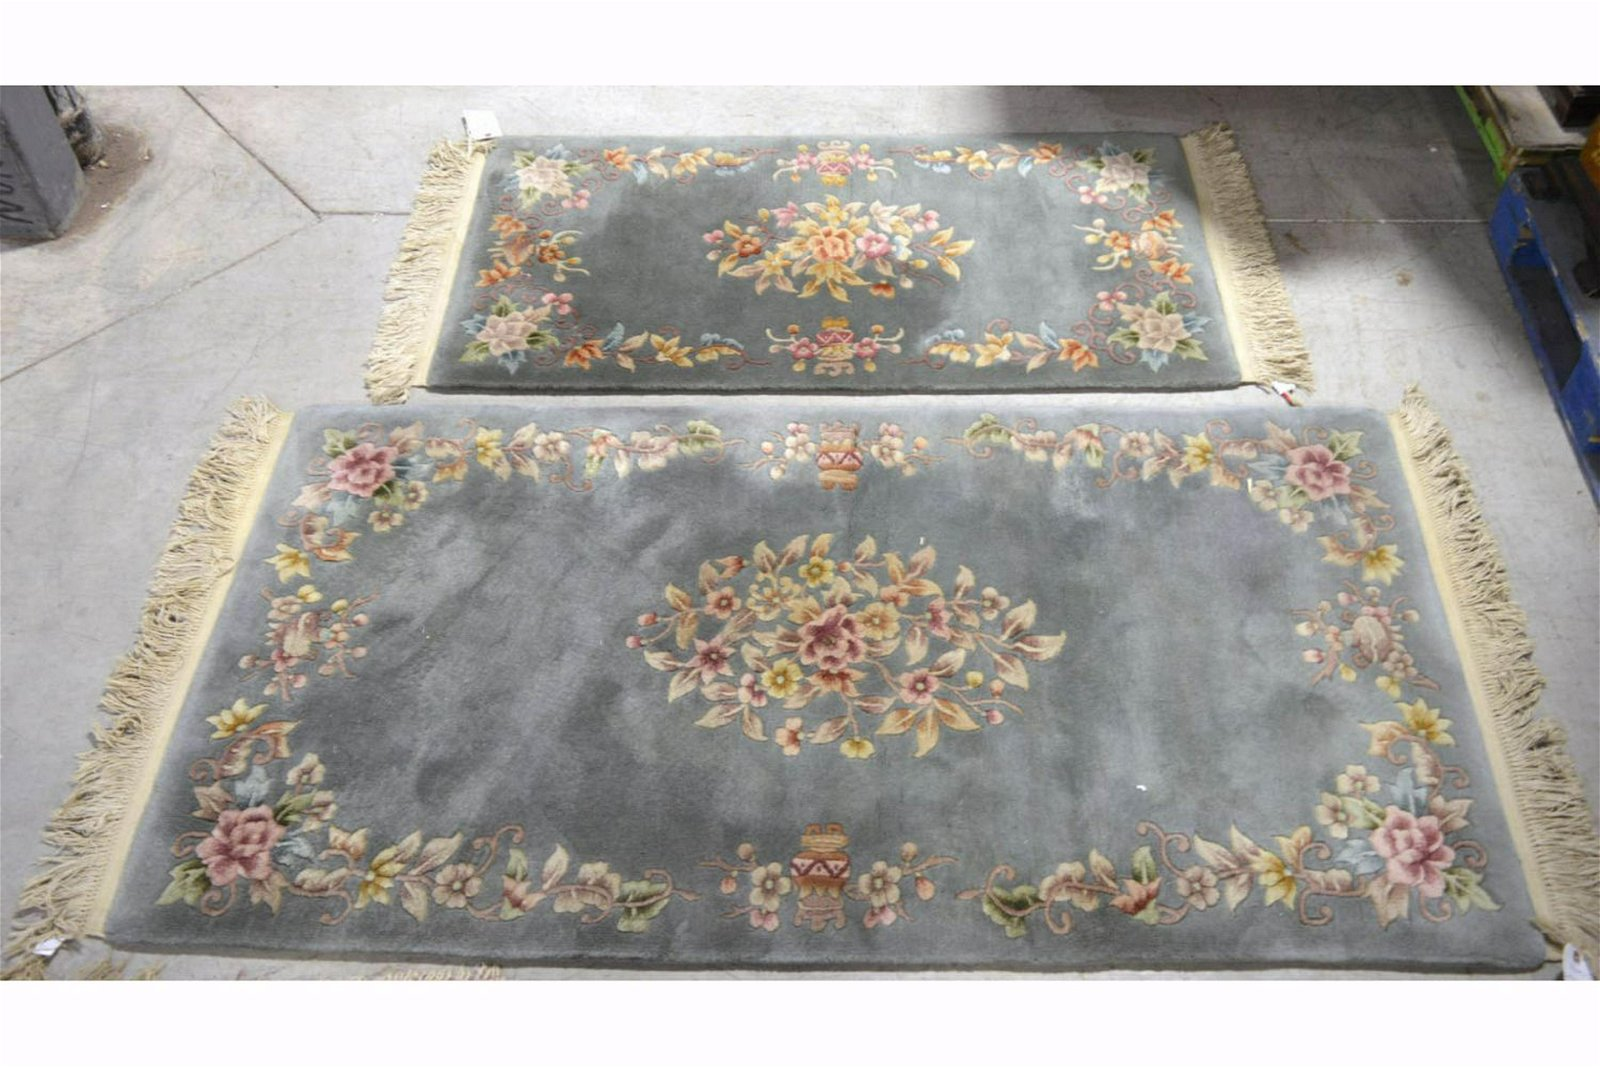 Set of 2 Chinese rugs